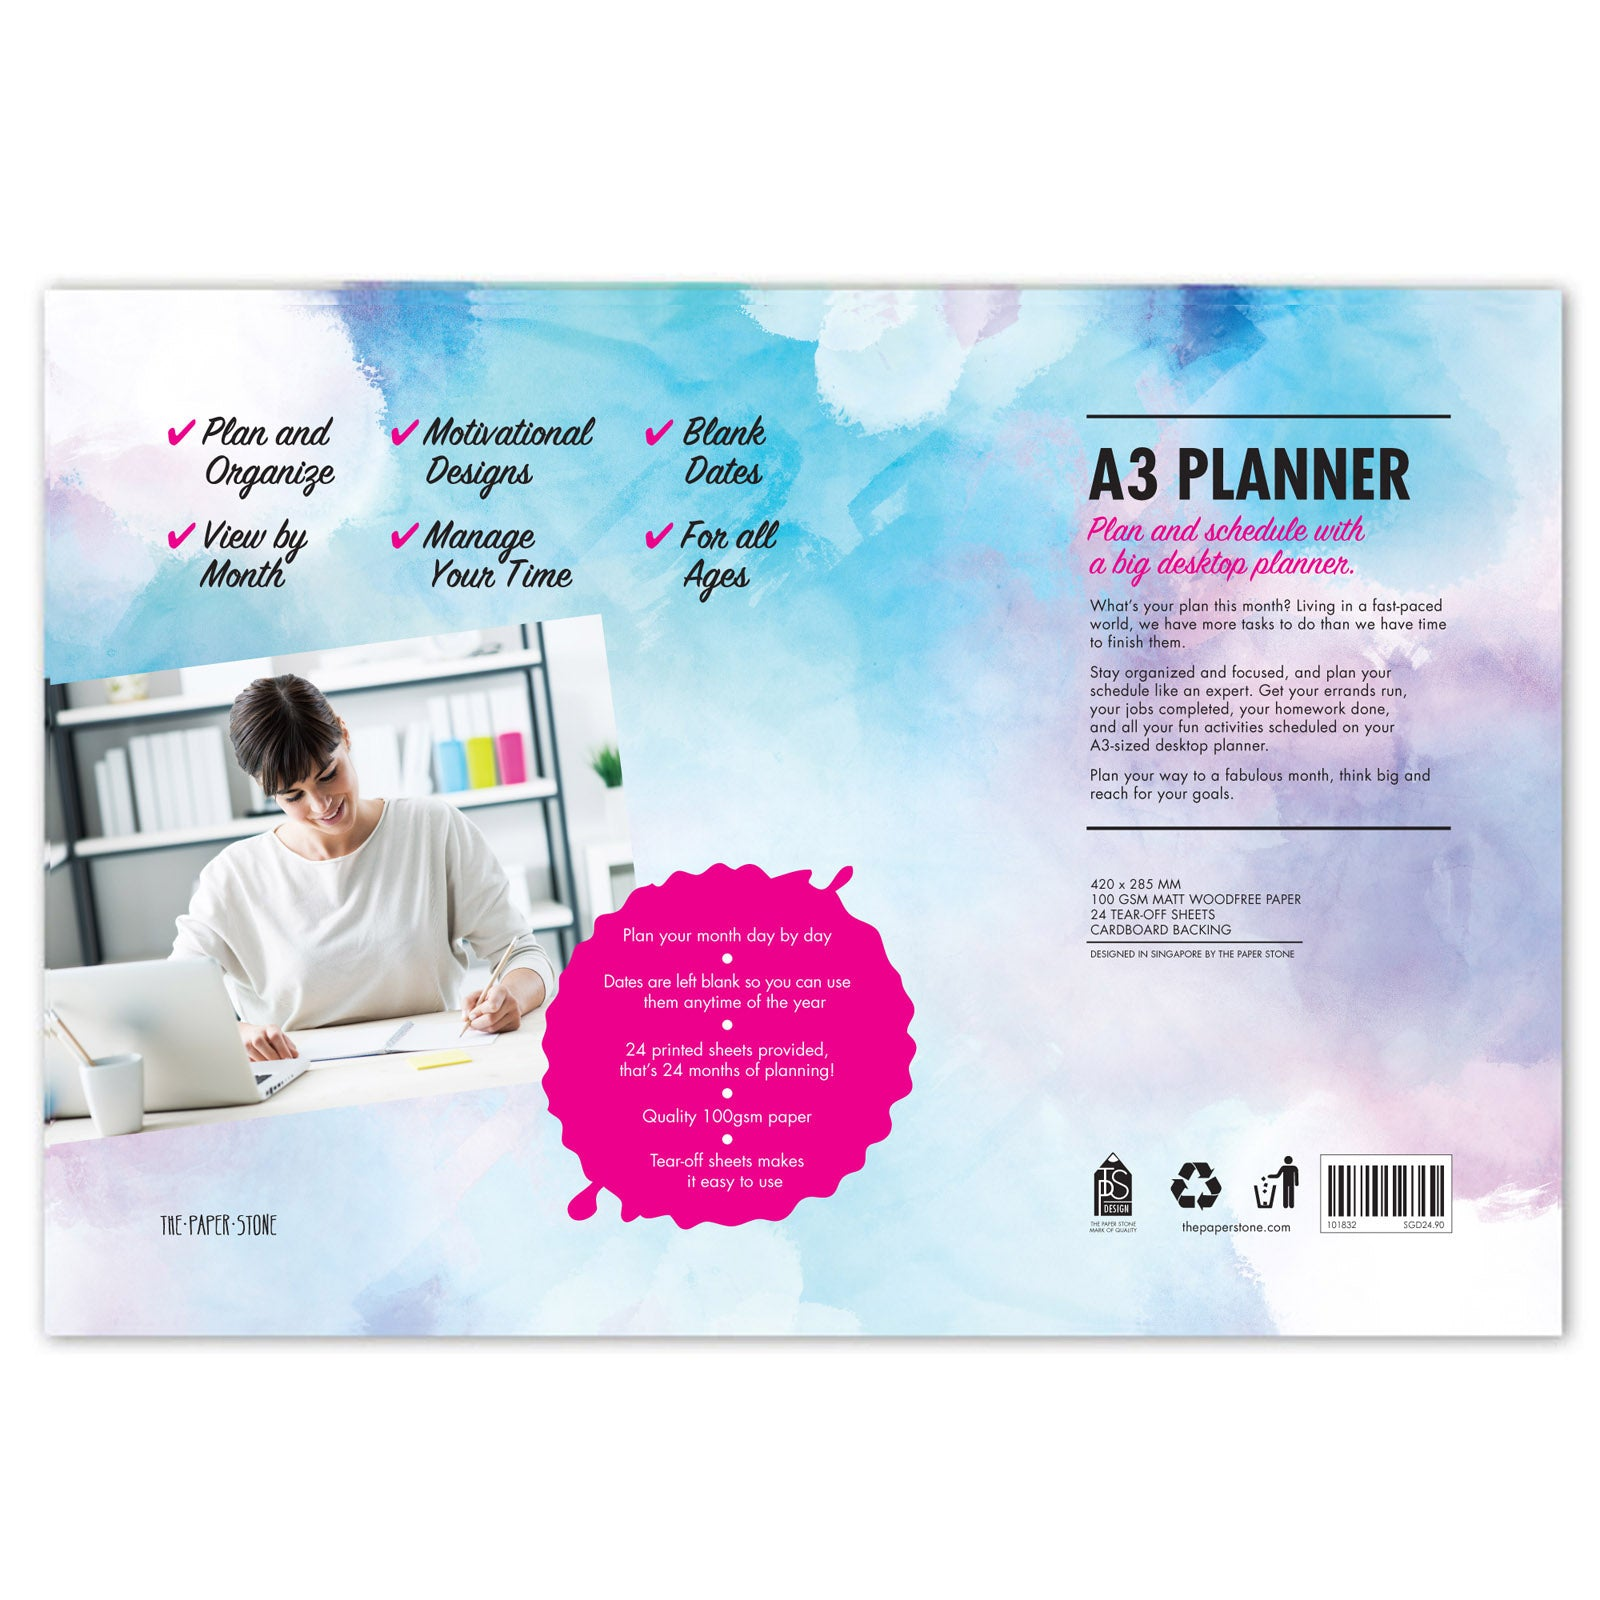 A3 Planner - My Super Awesome Planner